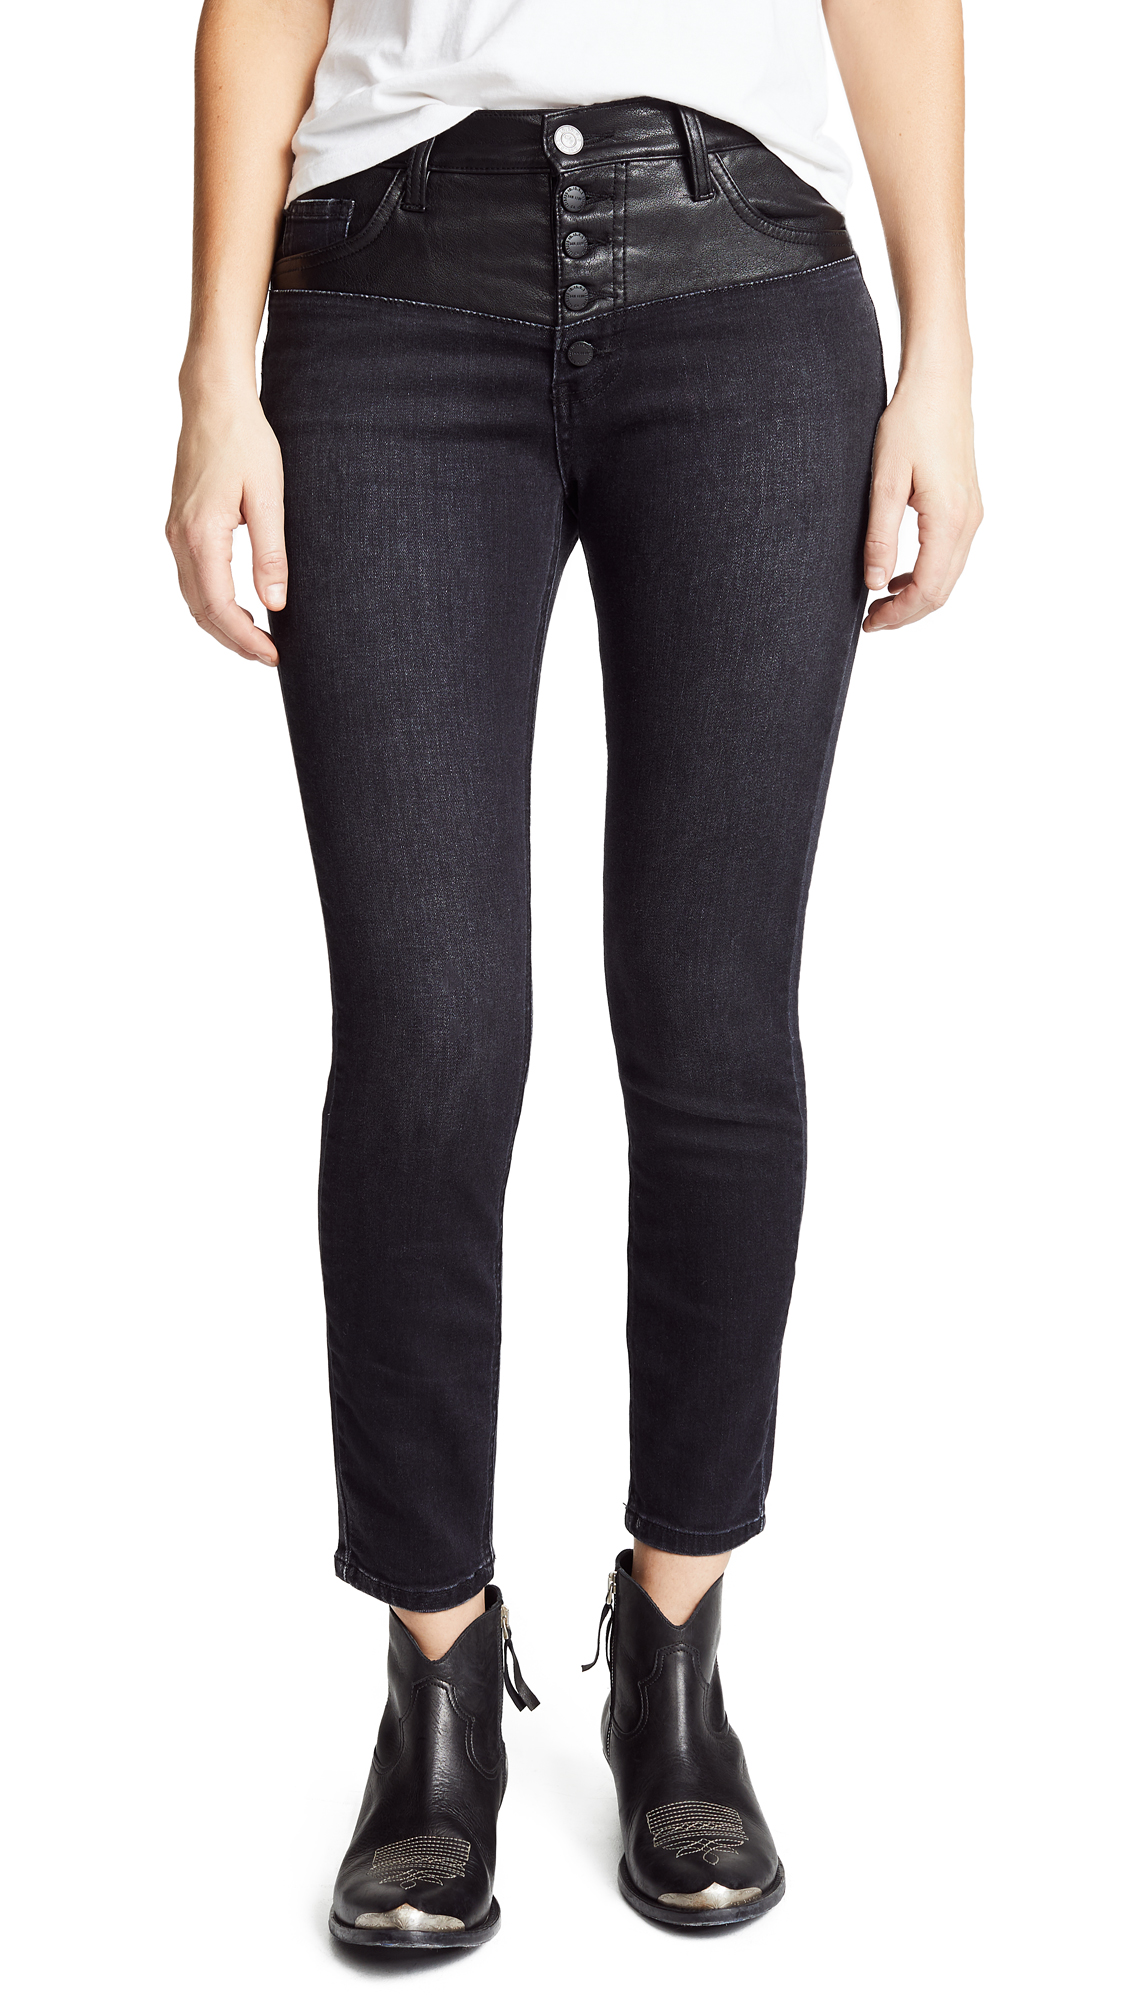 THE FUSED HIGHWAIST STILETTO JEANS